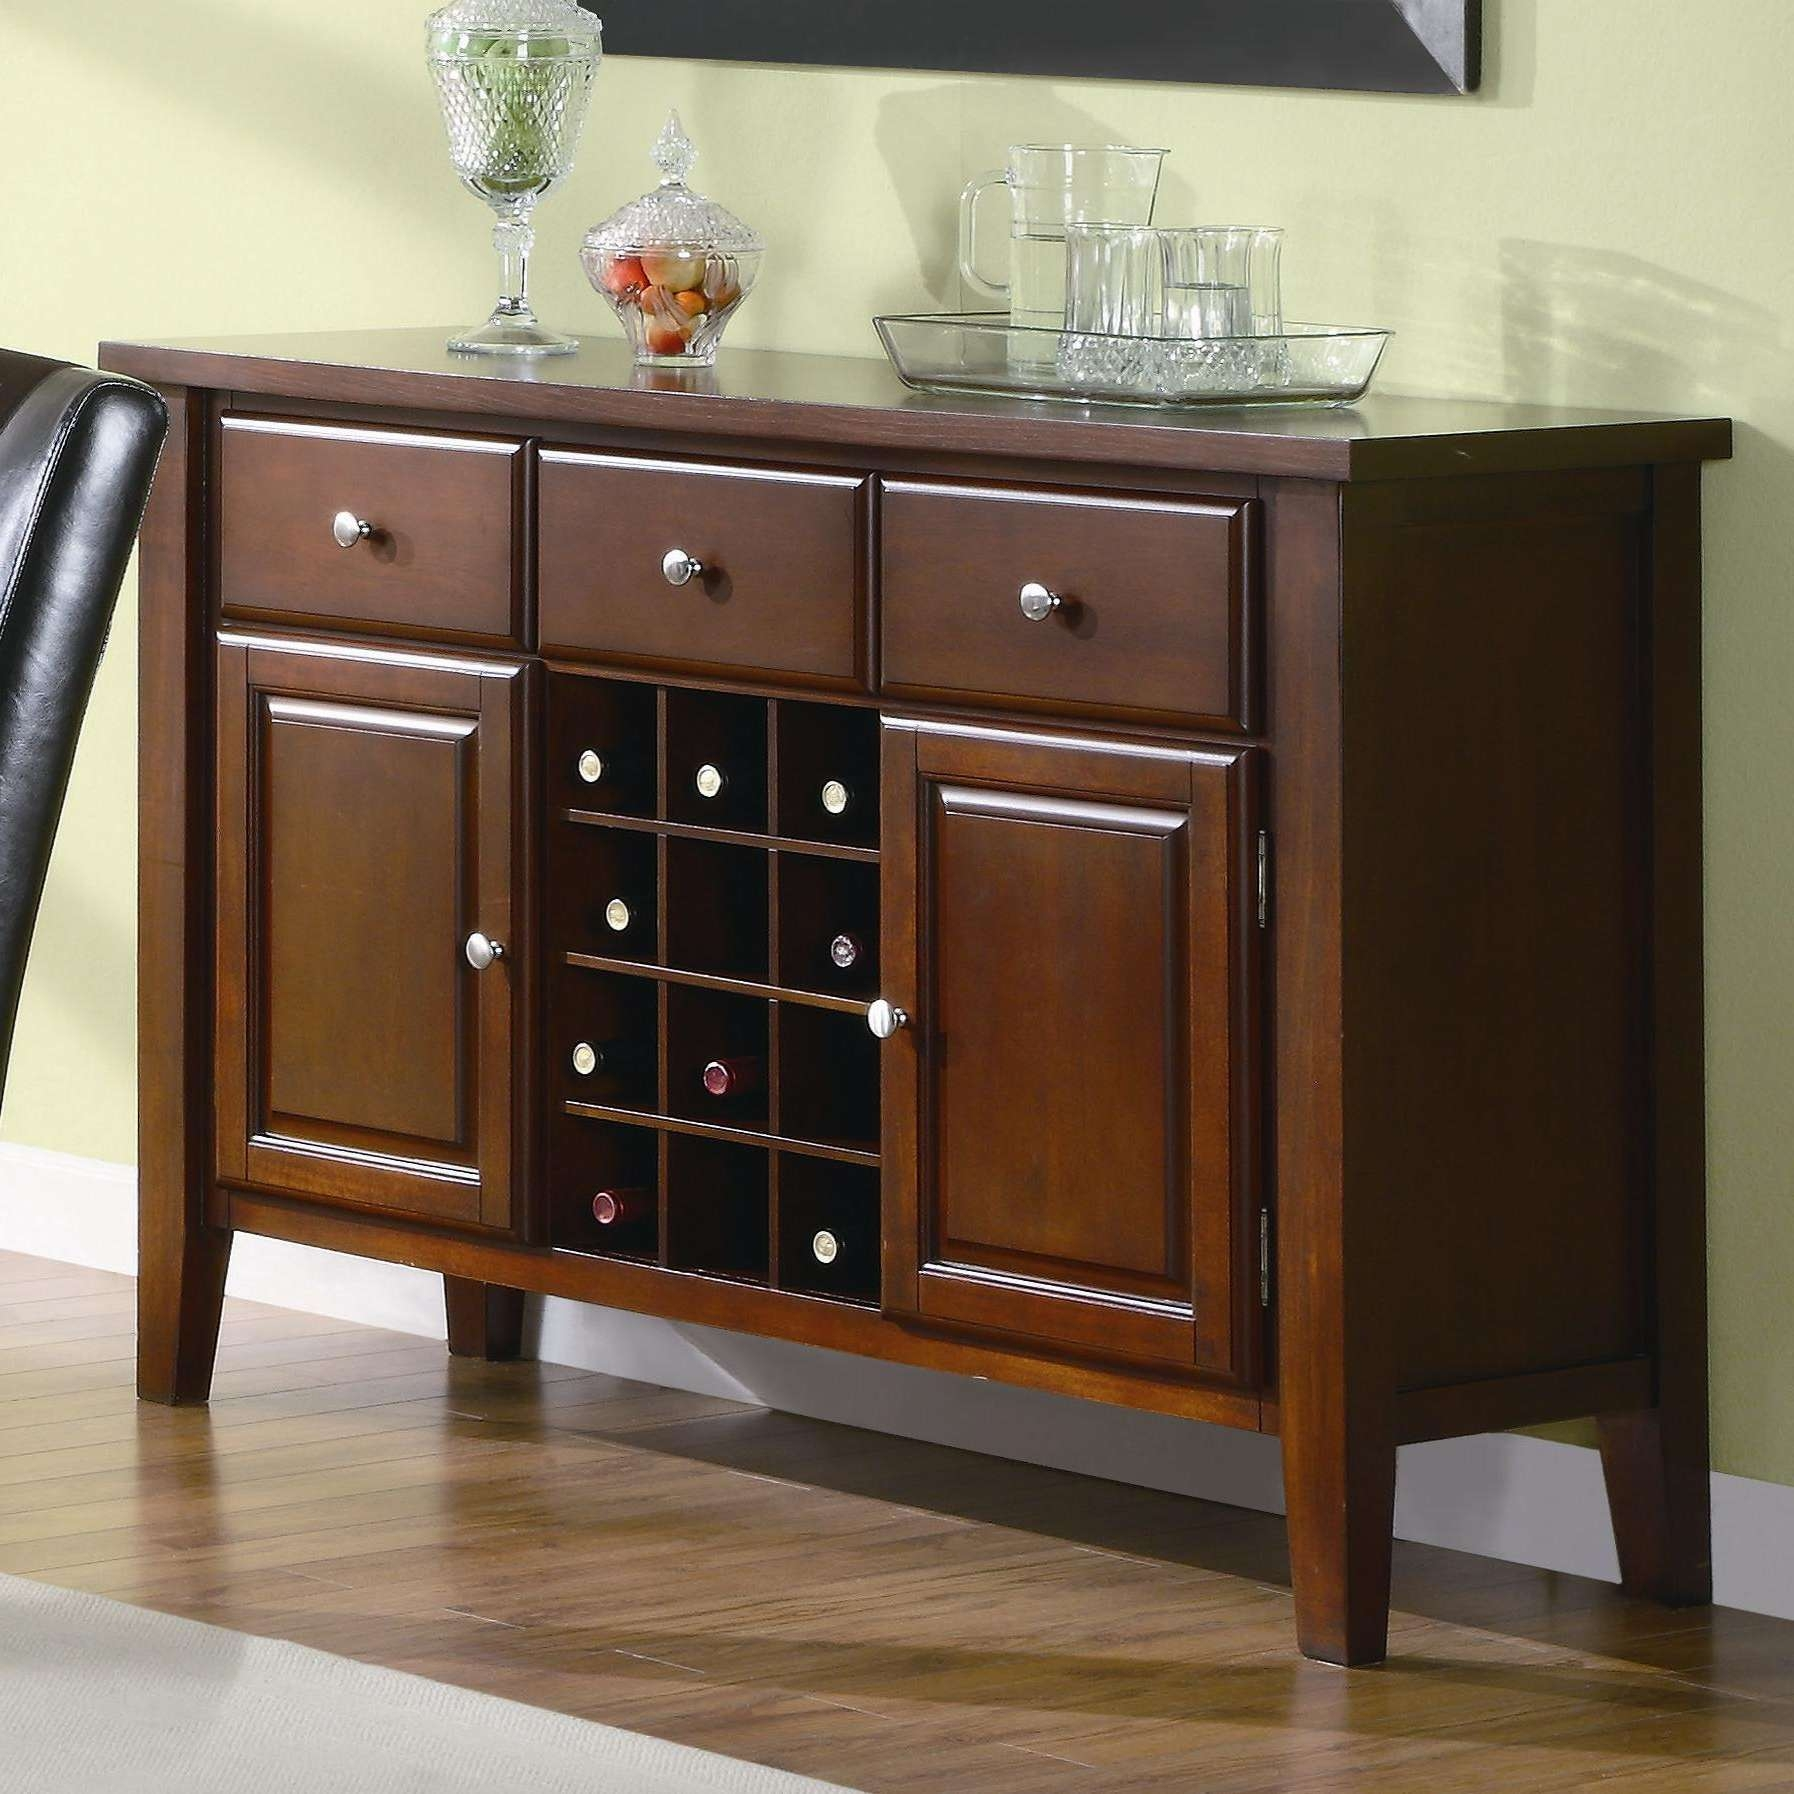 Dining Room: Exquisite Dining Room Servers With Best Pair Intended For Dining Room Servers And Sideboards (View 6 of 20)